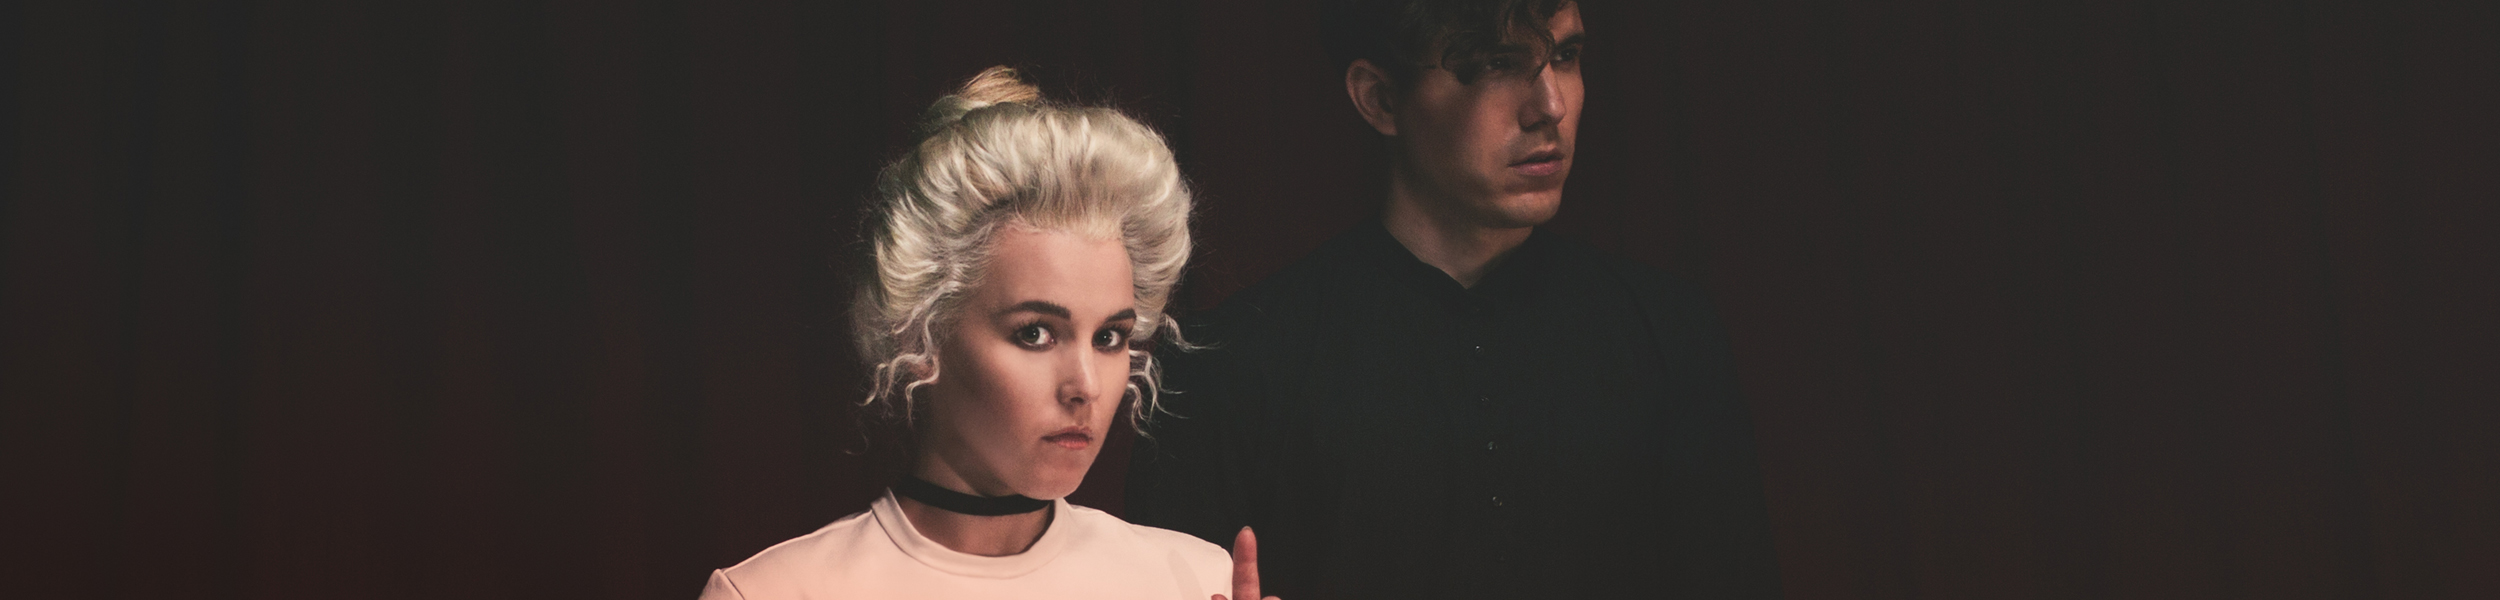 Purity Ring - Premiere New Song On BBC Radio 1, Album Streaming On NPR